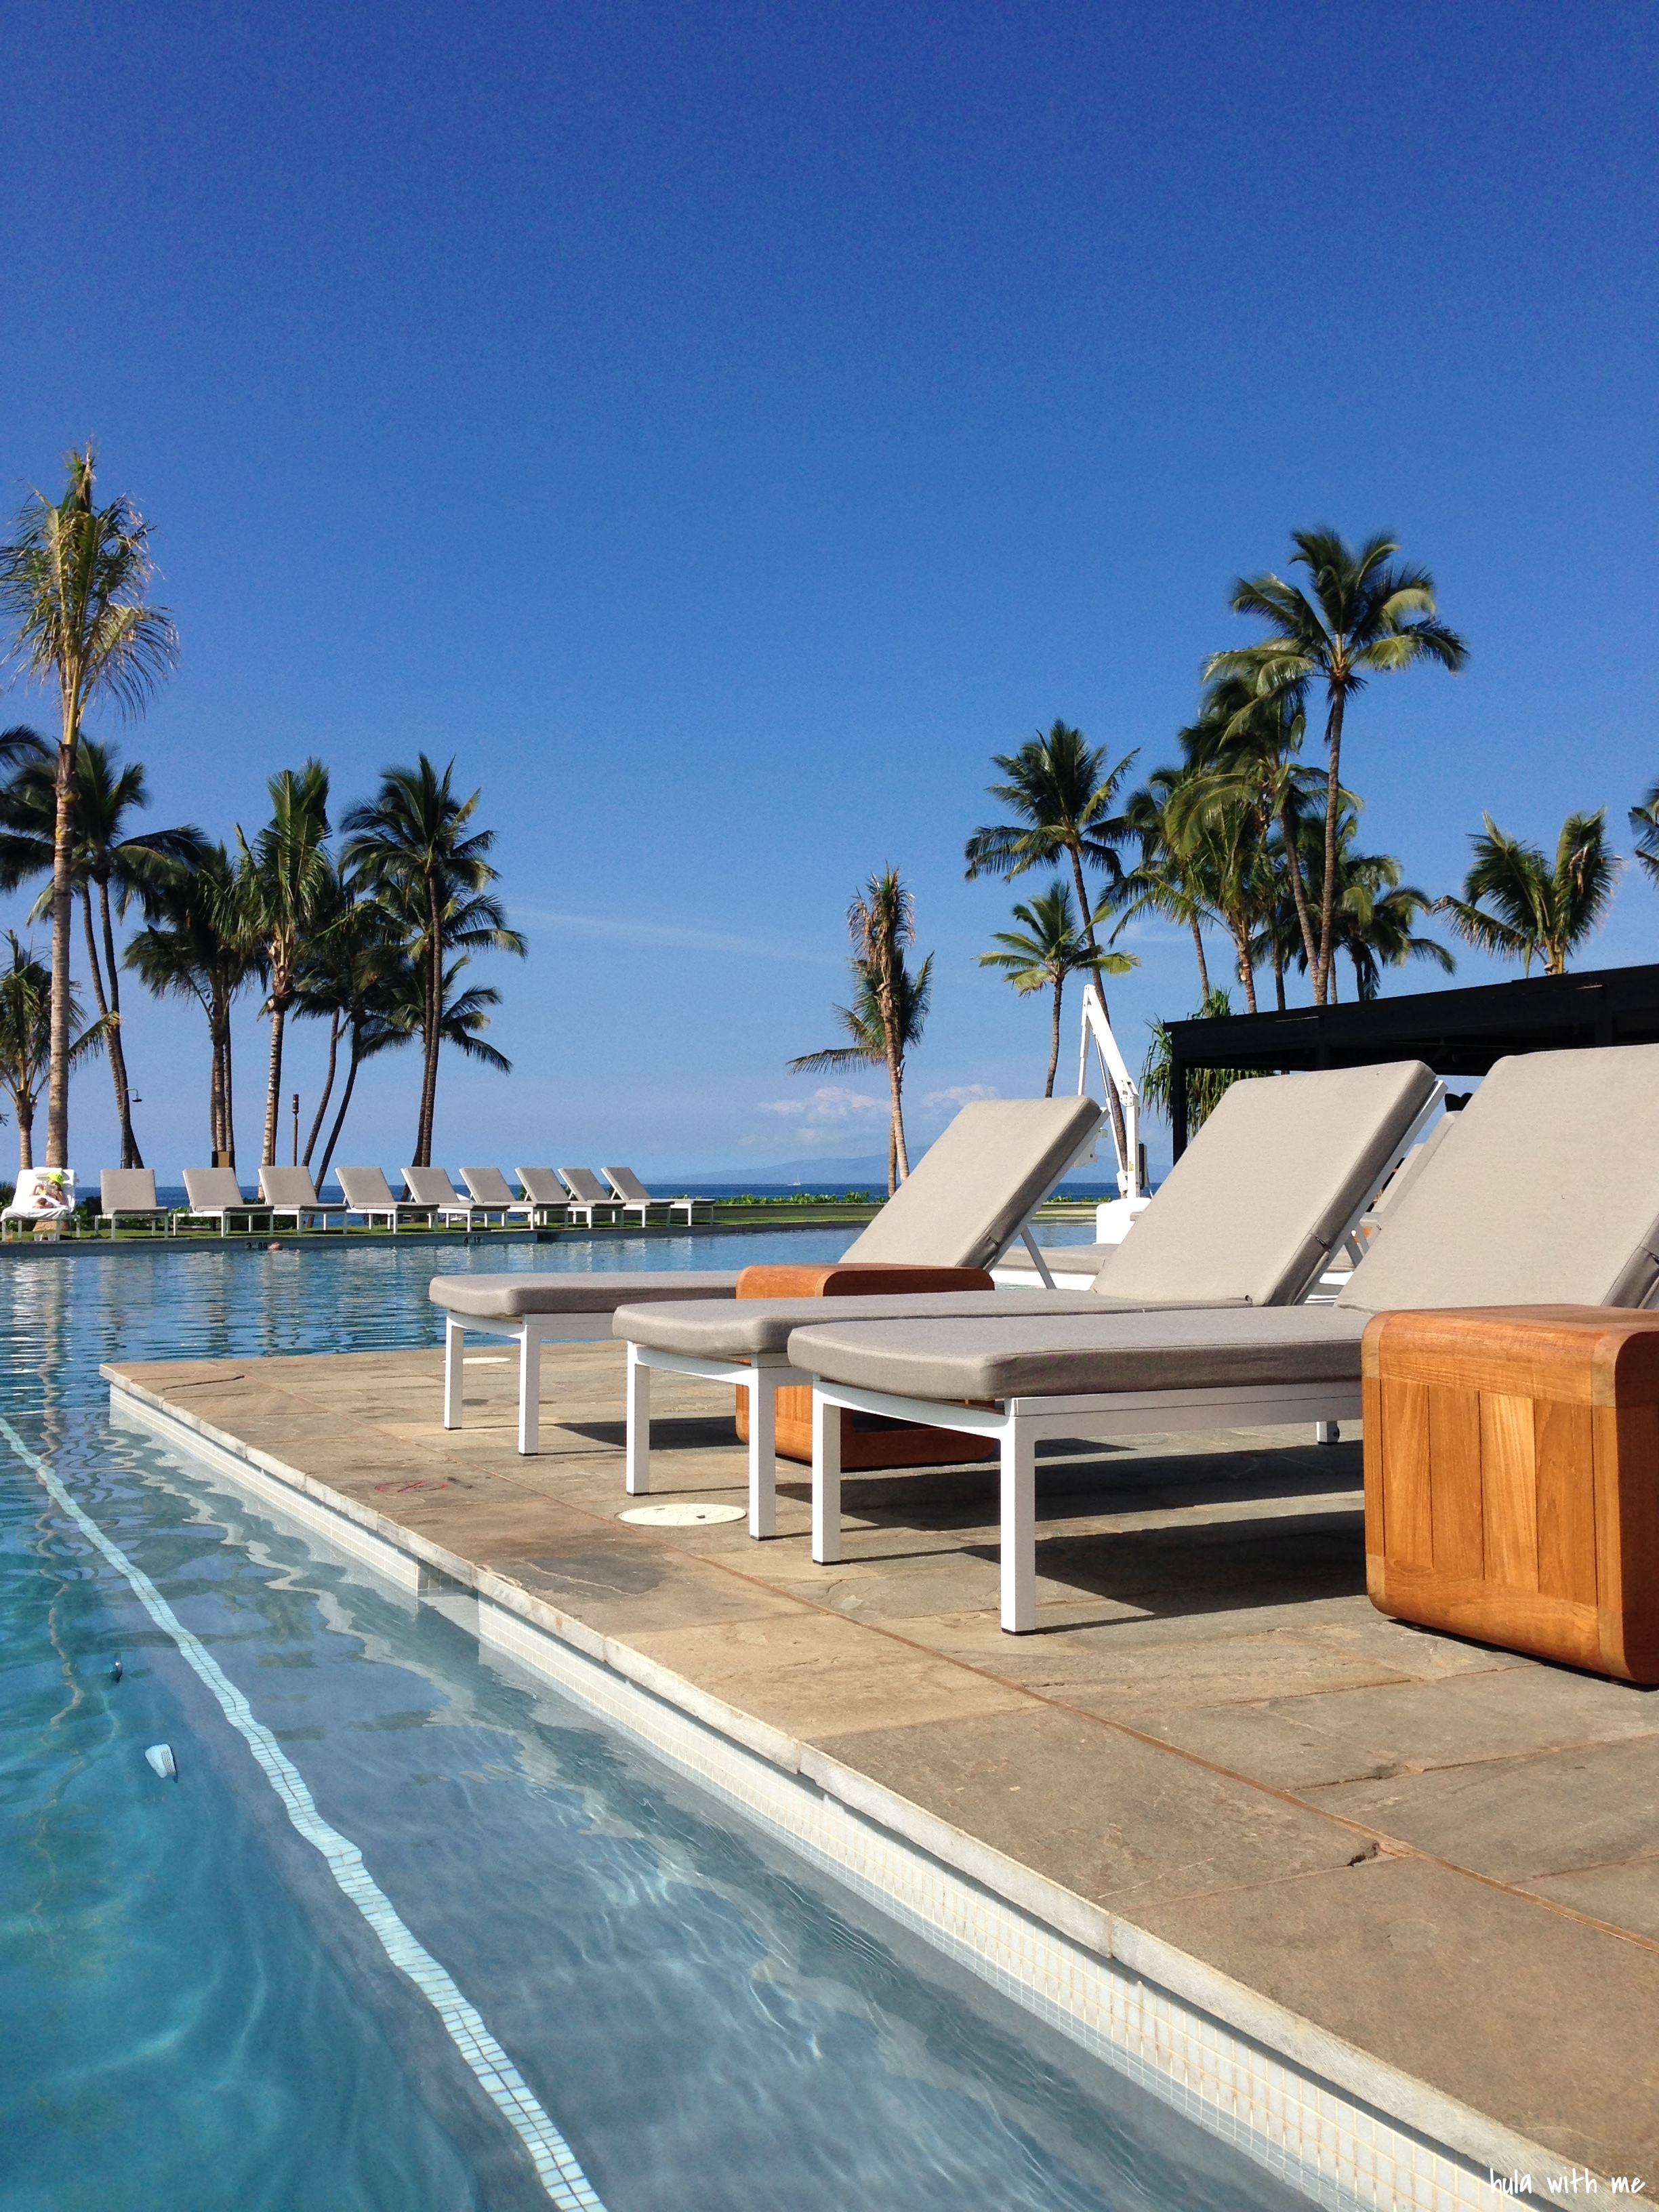 Put some sunscreen on! Poolside at Maui Andaz.